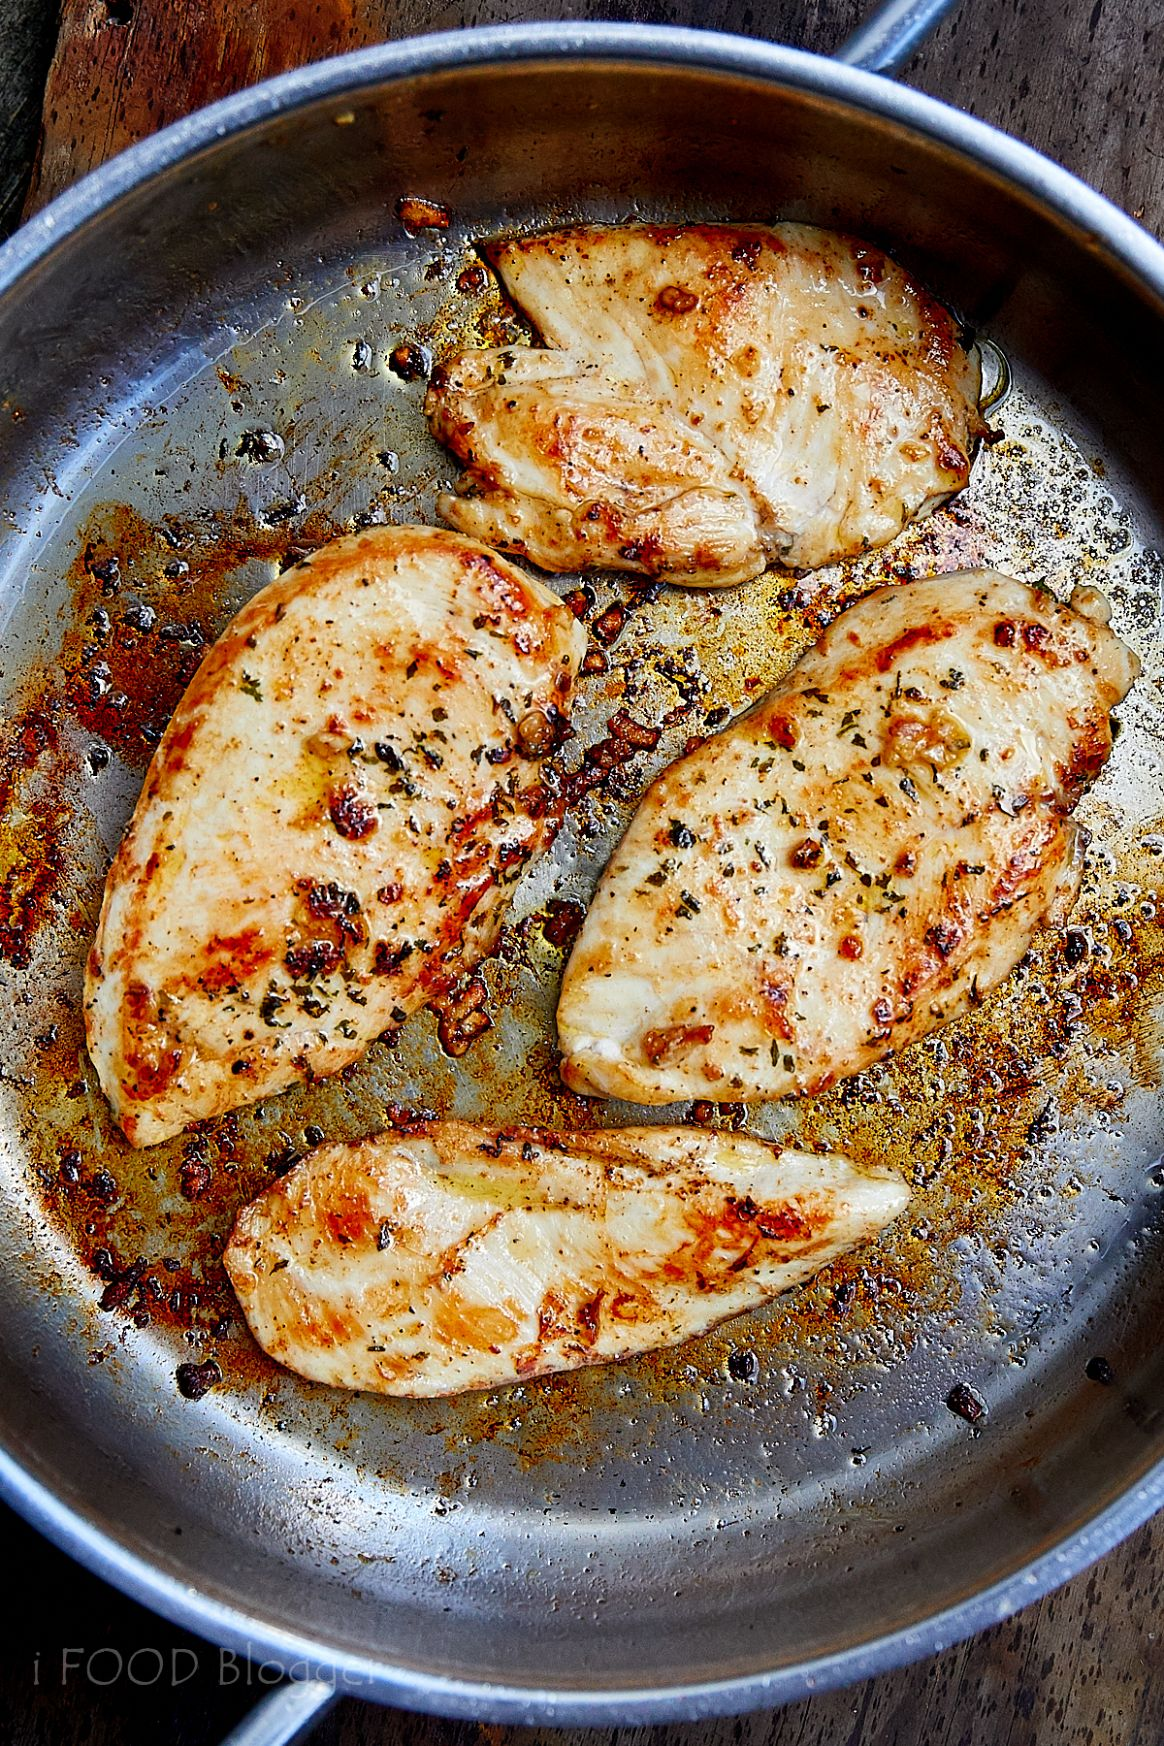 9-Minute Pan-Fried Chicken Breast - Recipes With Chicken Breast For One